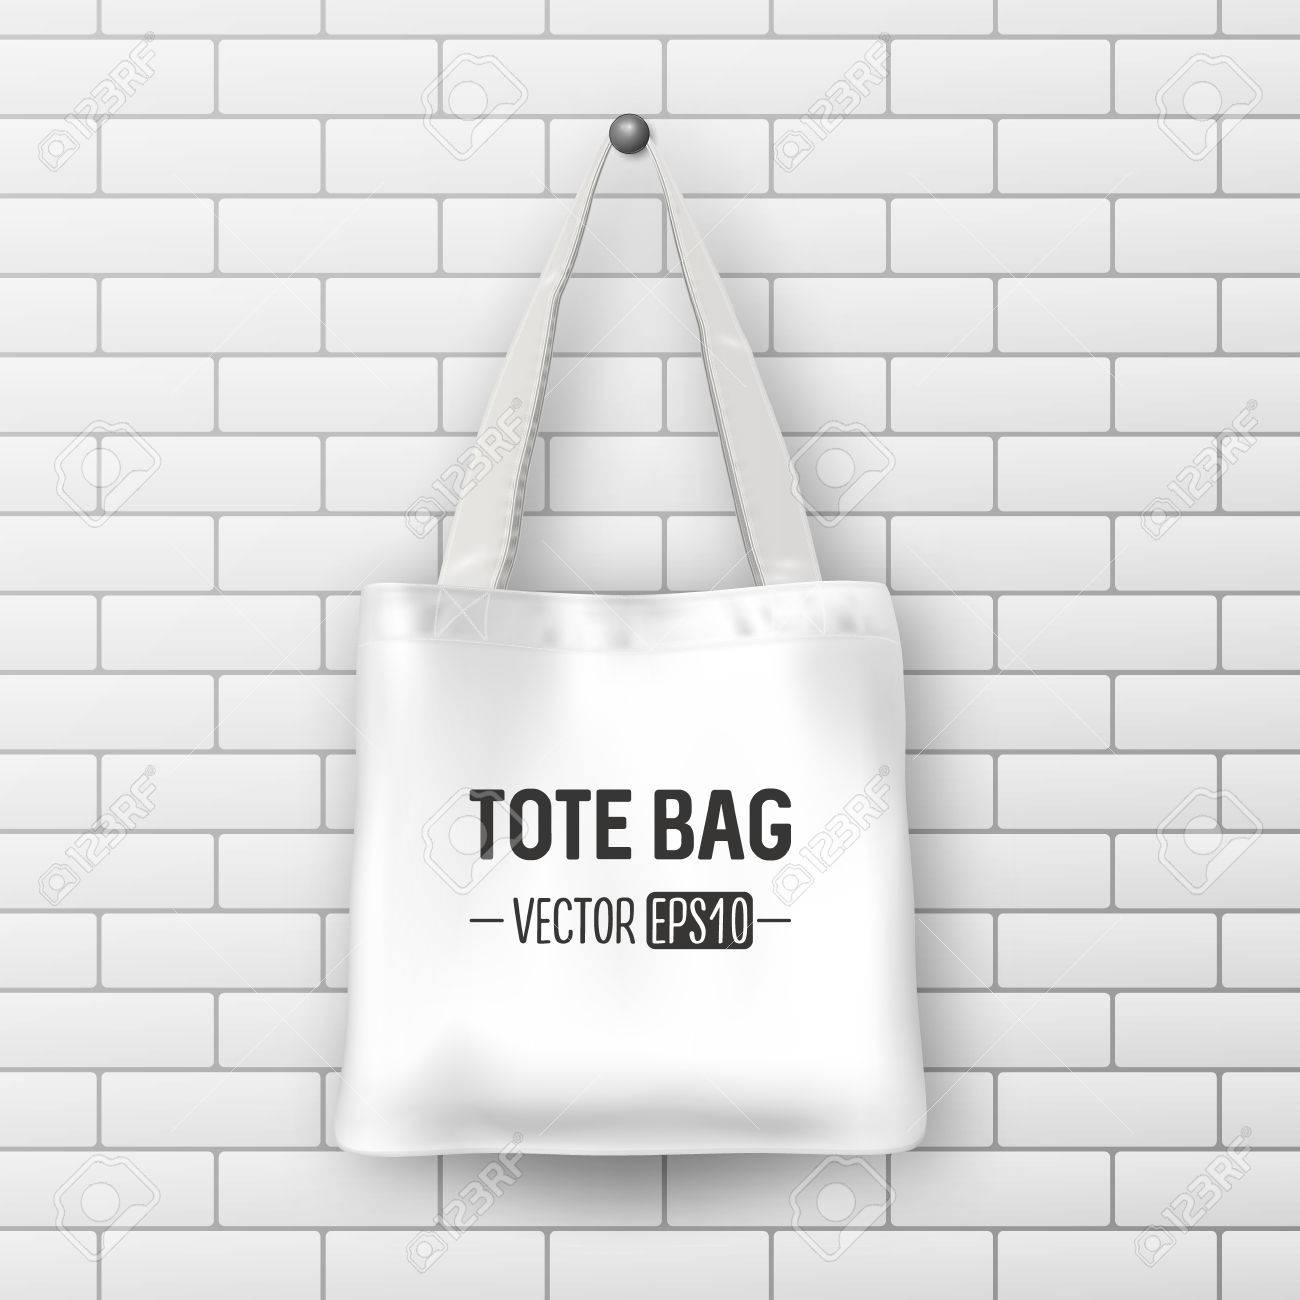 Realistic Vector White Textile Tote Bag Closeup On Brick Wall